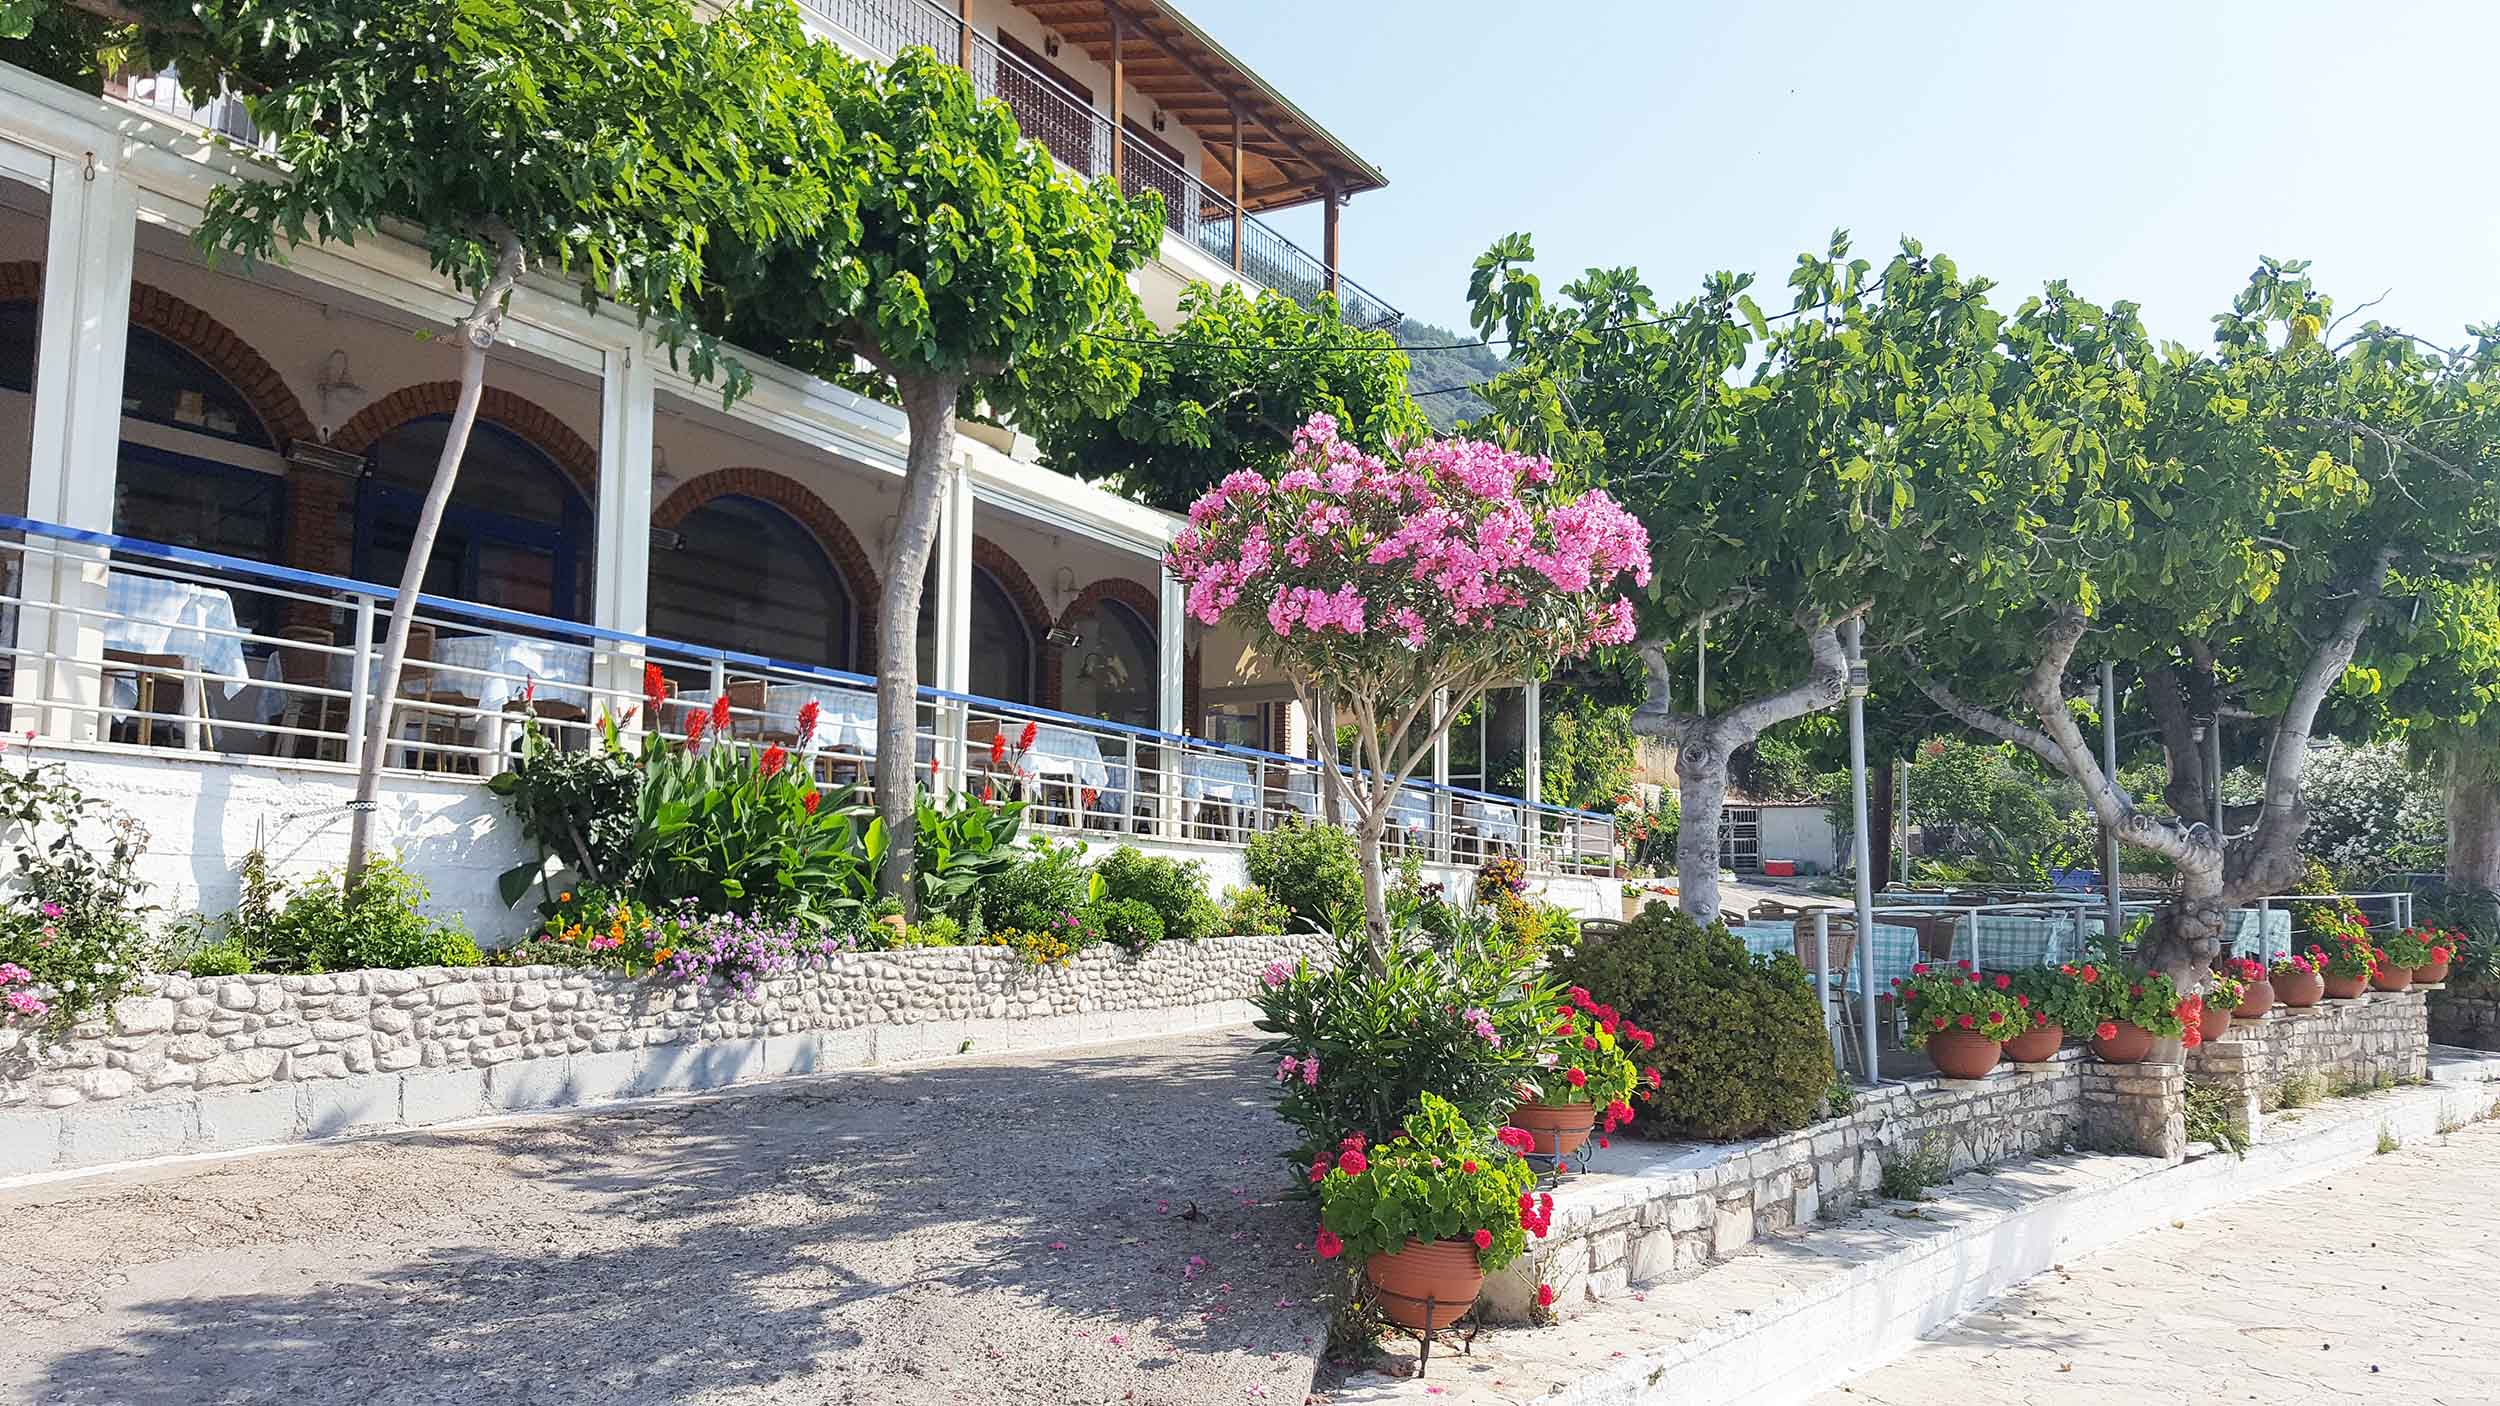 Monistiraki town and flowers.jpg